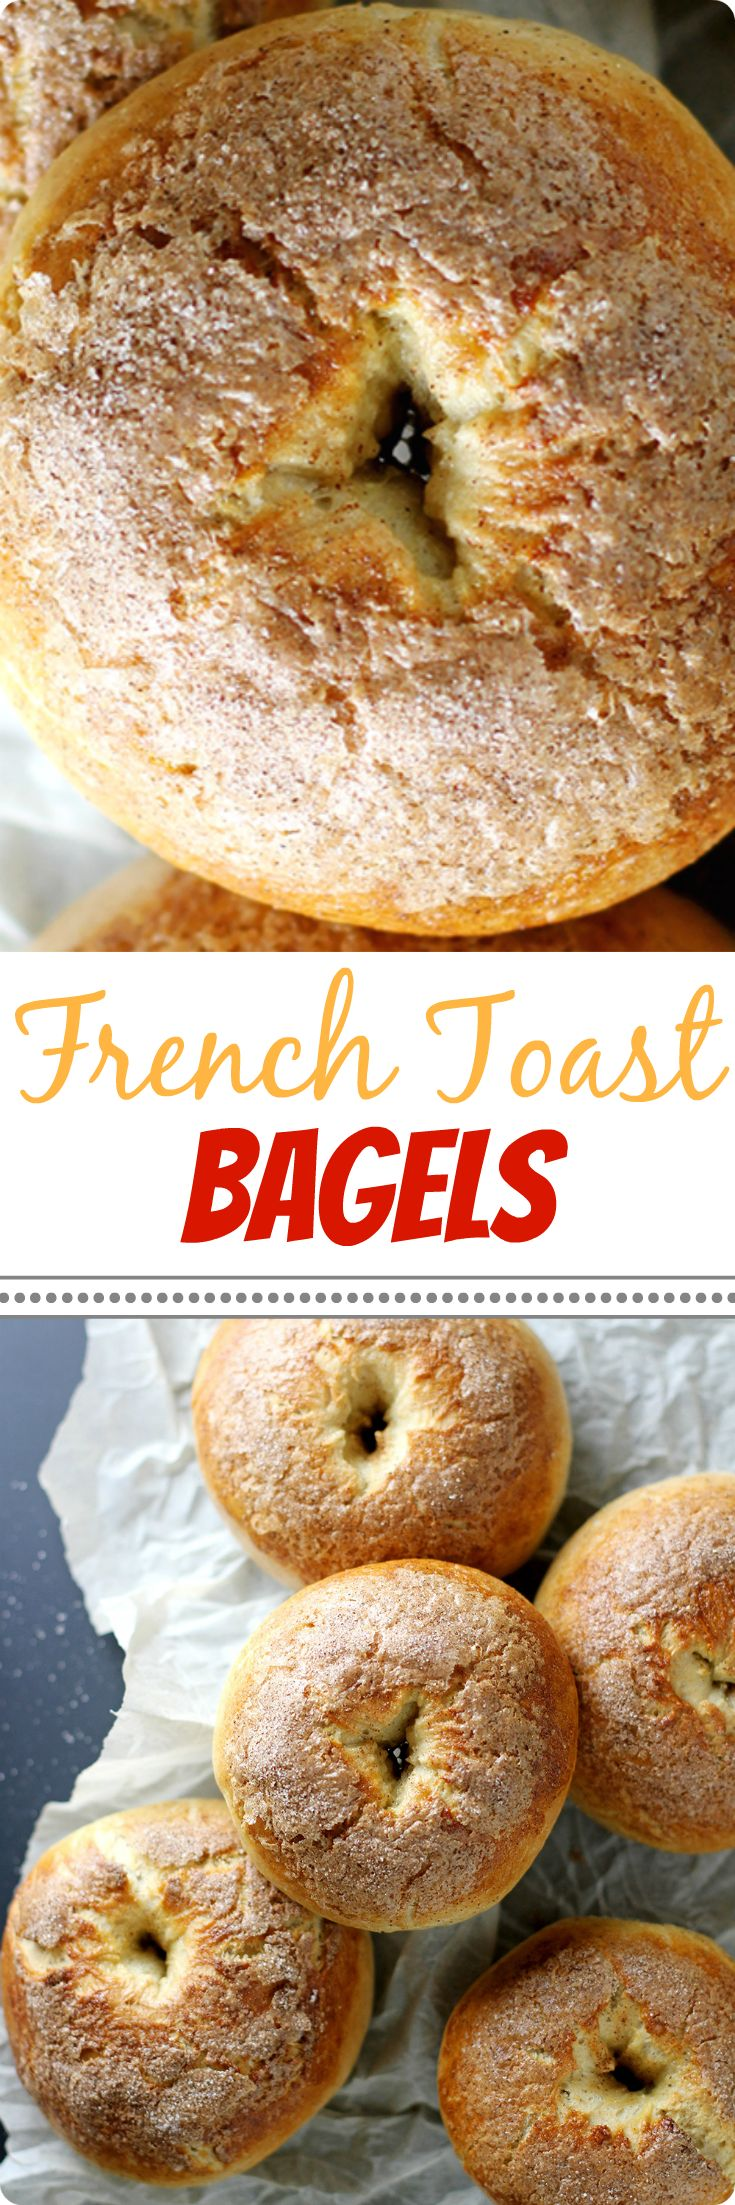 Why choose between French toast and bagels for breakfast when you can have both? These fluffy, soft bagels are easy to bake and taste just like classic French toast with maple, cinnamon, brown sugar and vanilla flavors. Don't forget the cream cheese! Find recipe at redstaryeast.com.